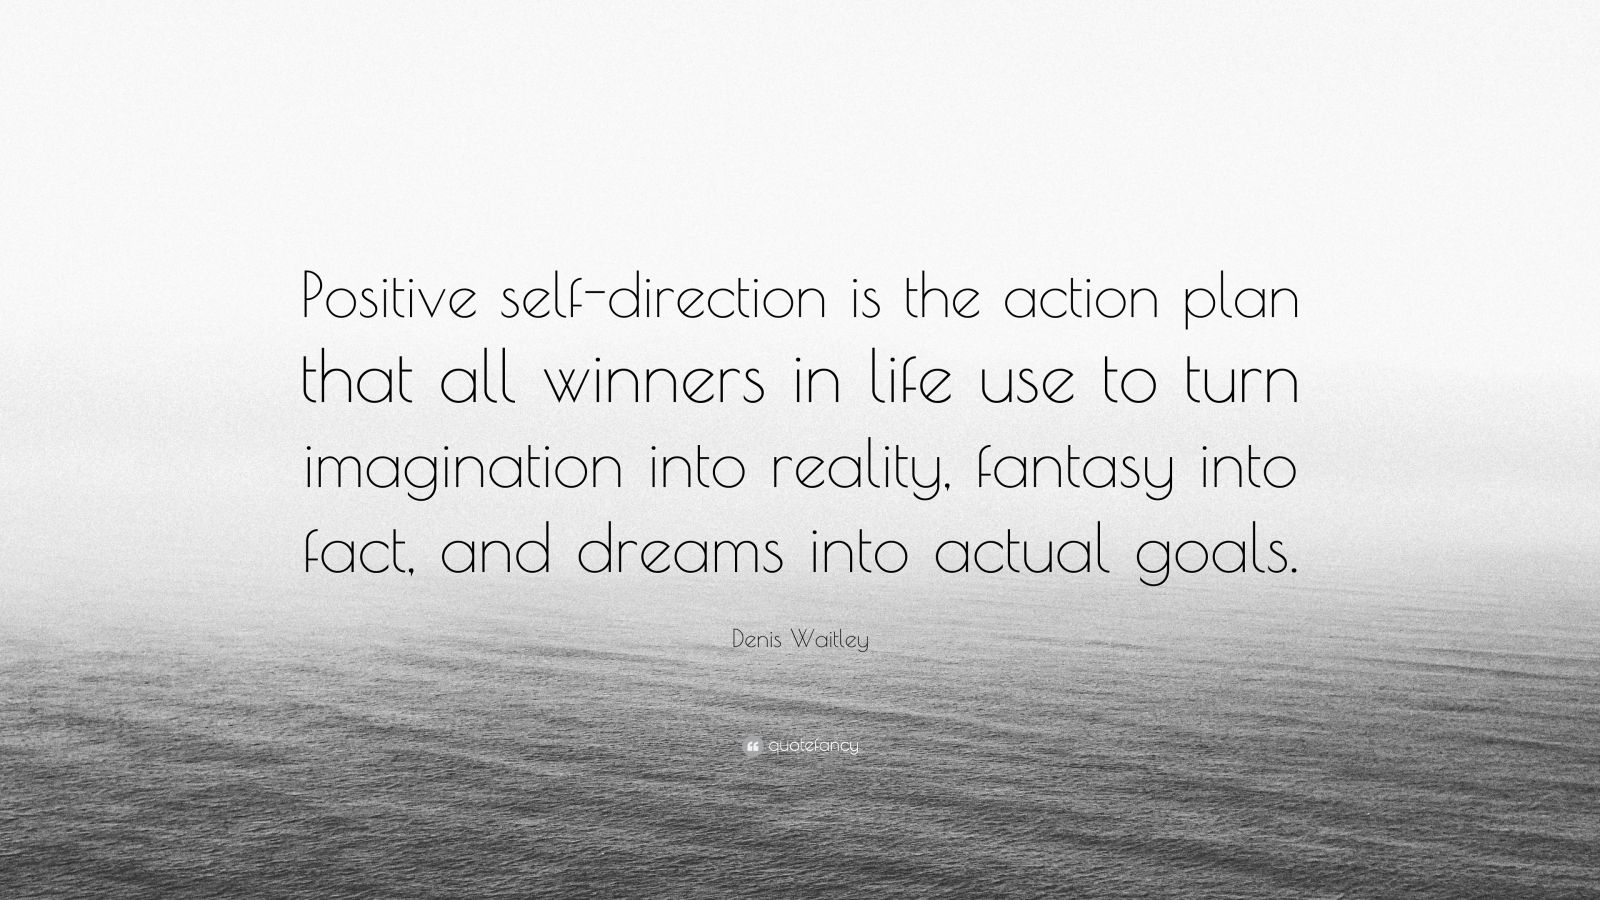 """Denis Waitley Quote: """"Positive self-direction is the action plan that all winners in life use to turn imagination into reality, fantasy into fact, and dreams into actual goals."""""""